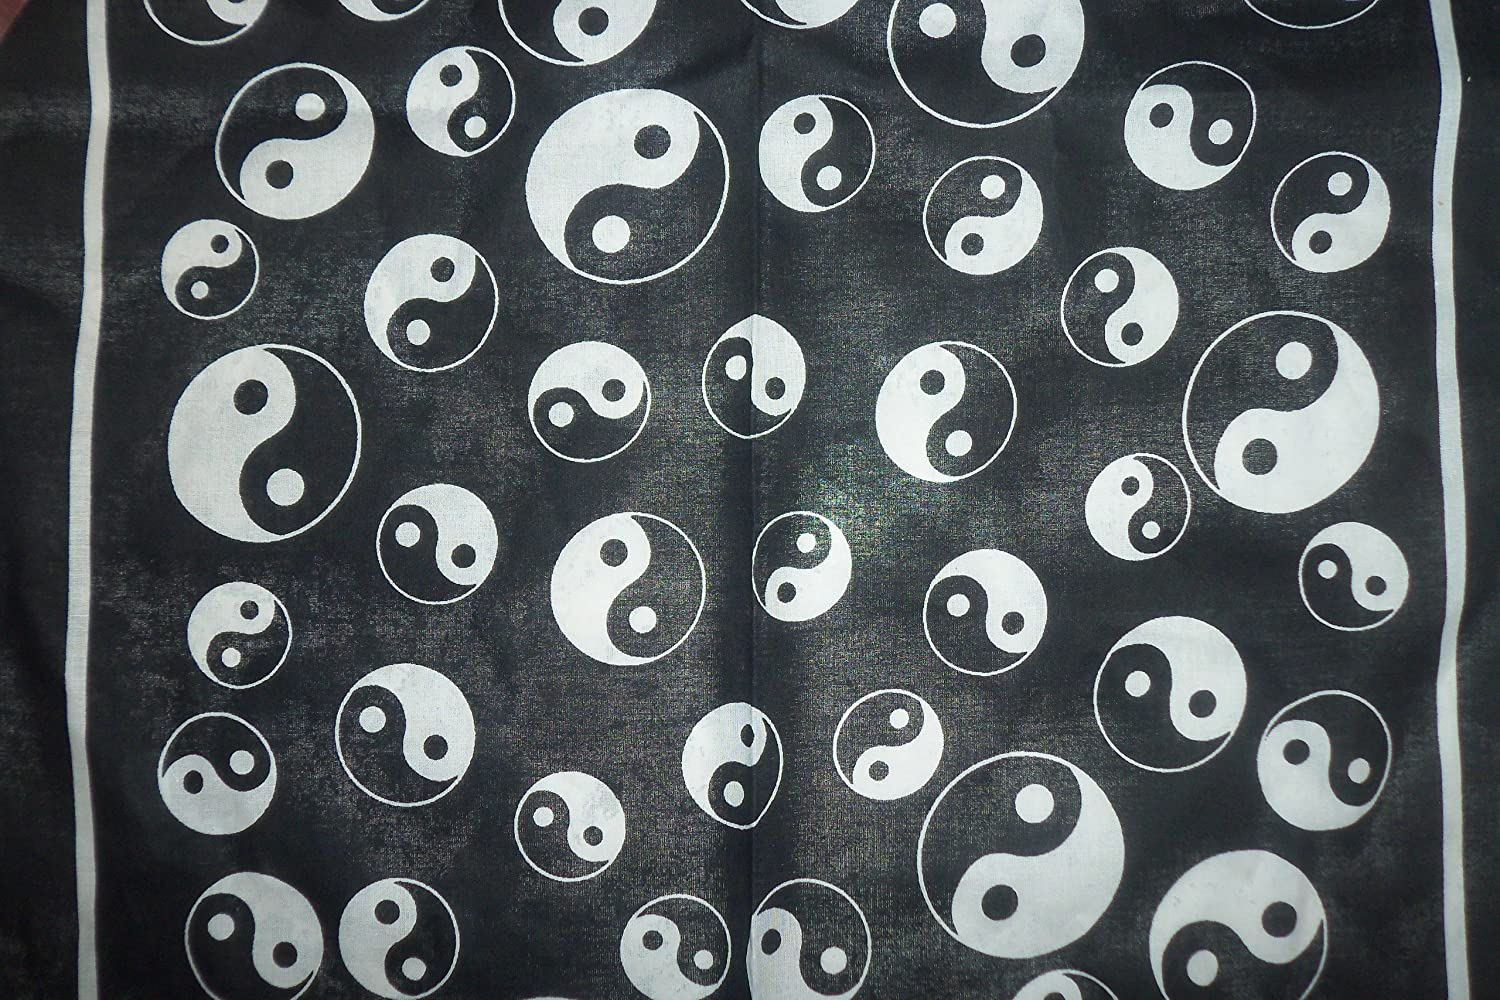 100% Cotton 55cm Square Bandana scarf , Black and white Ying Yang pattern ,Brand New item ,